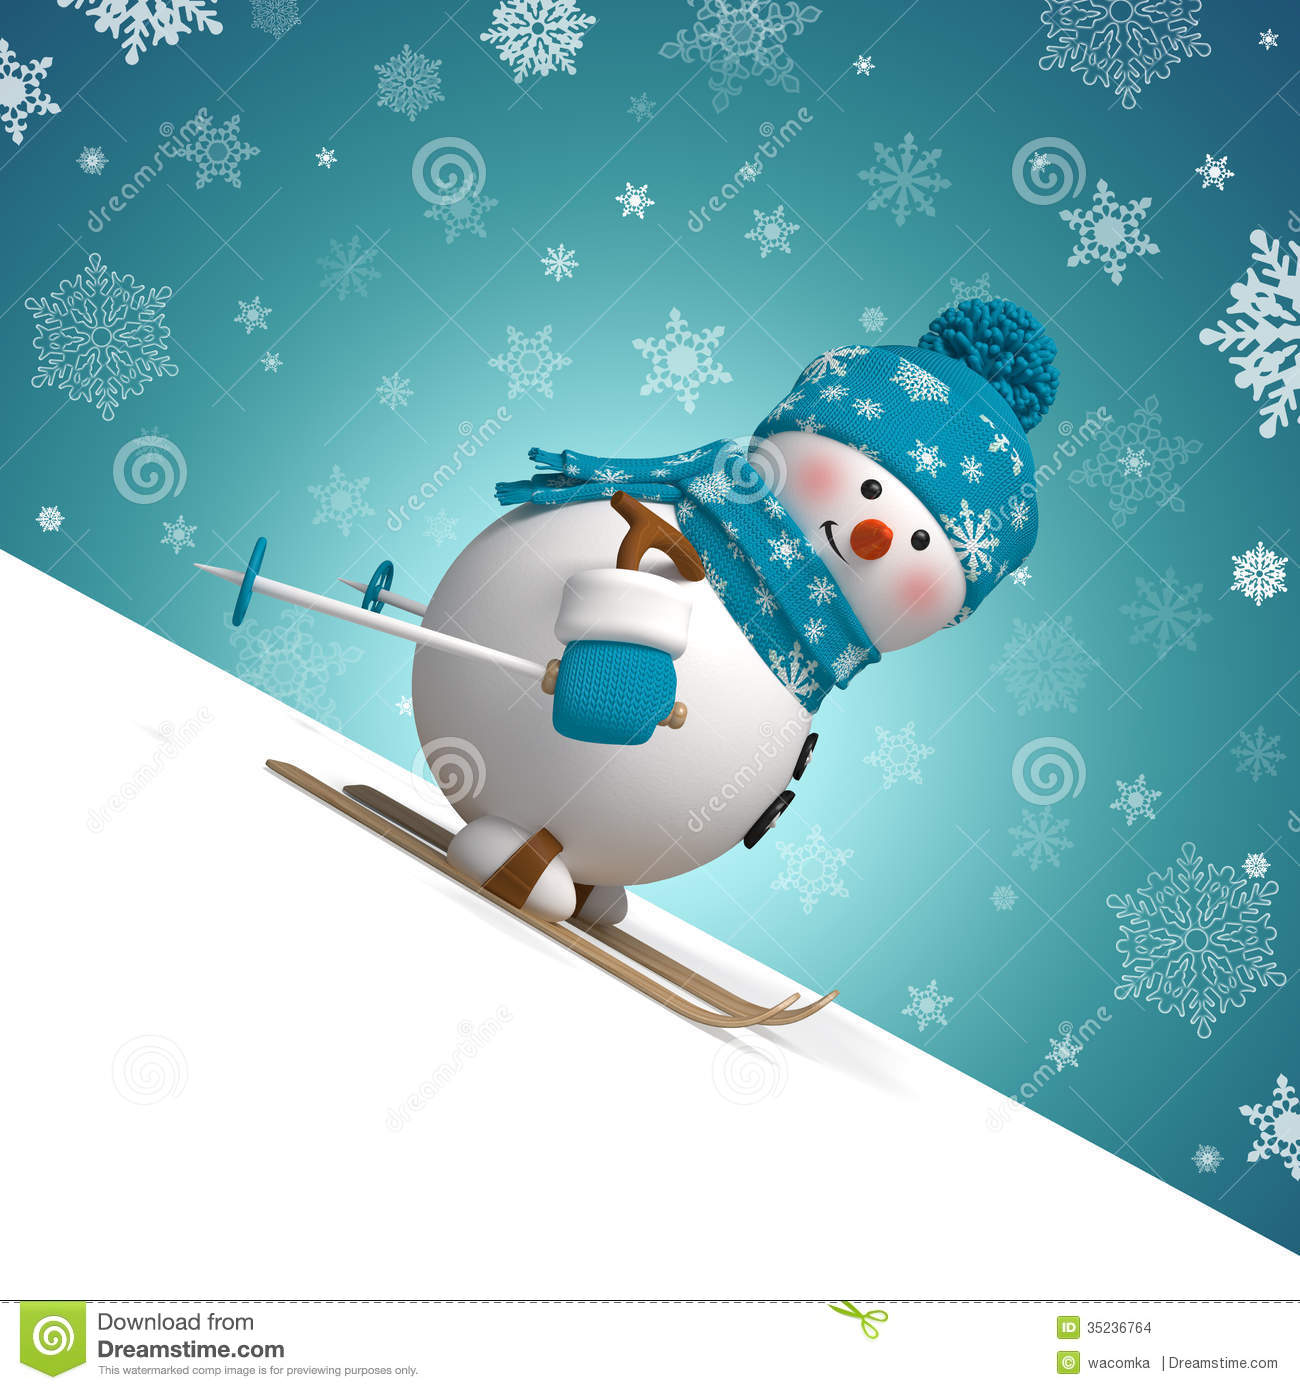 Christmas greeting card with 3d cartoon snowman sliding down the hill.